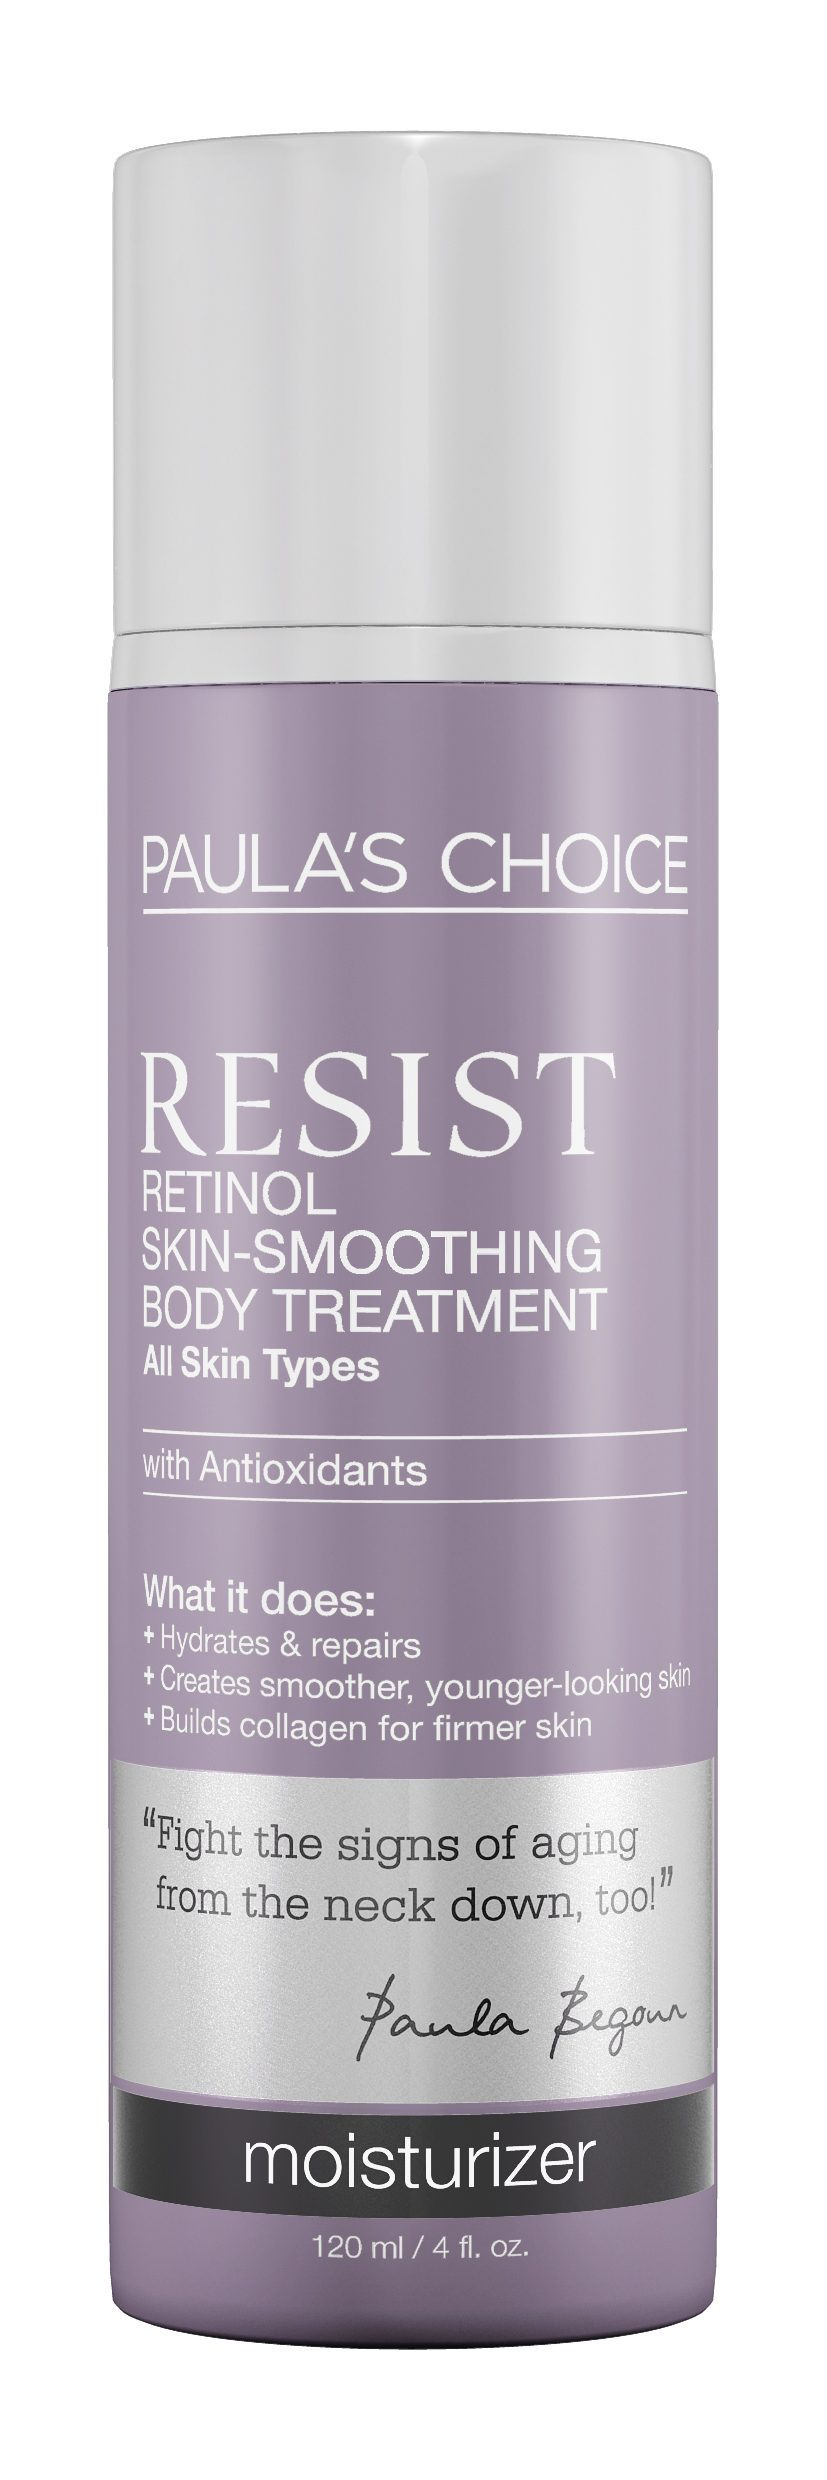 Jolanda smeert zich strak met Paula's Choice Retinol Smoothing Body Treatment